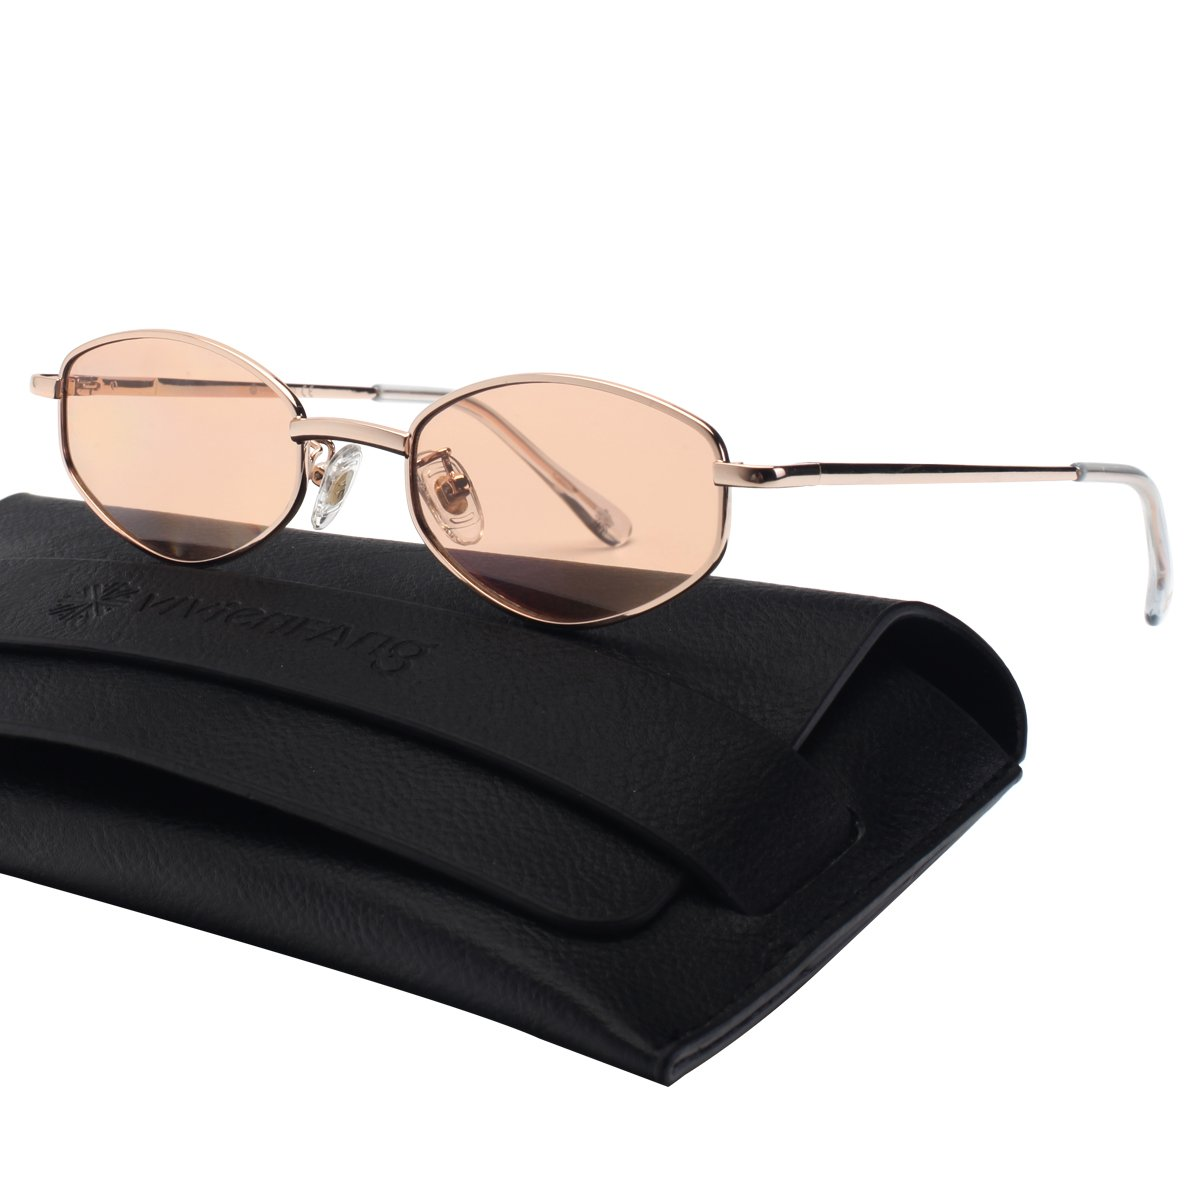 VIVIENFANG 90's Vintage Small Oval Sunglasses Tinted Lens Tiny Metal Shades For Men Women G87810D Gold